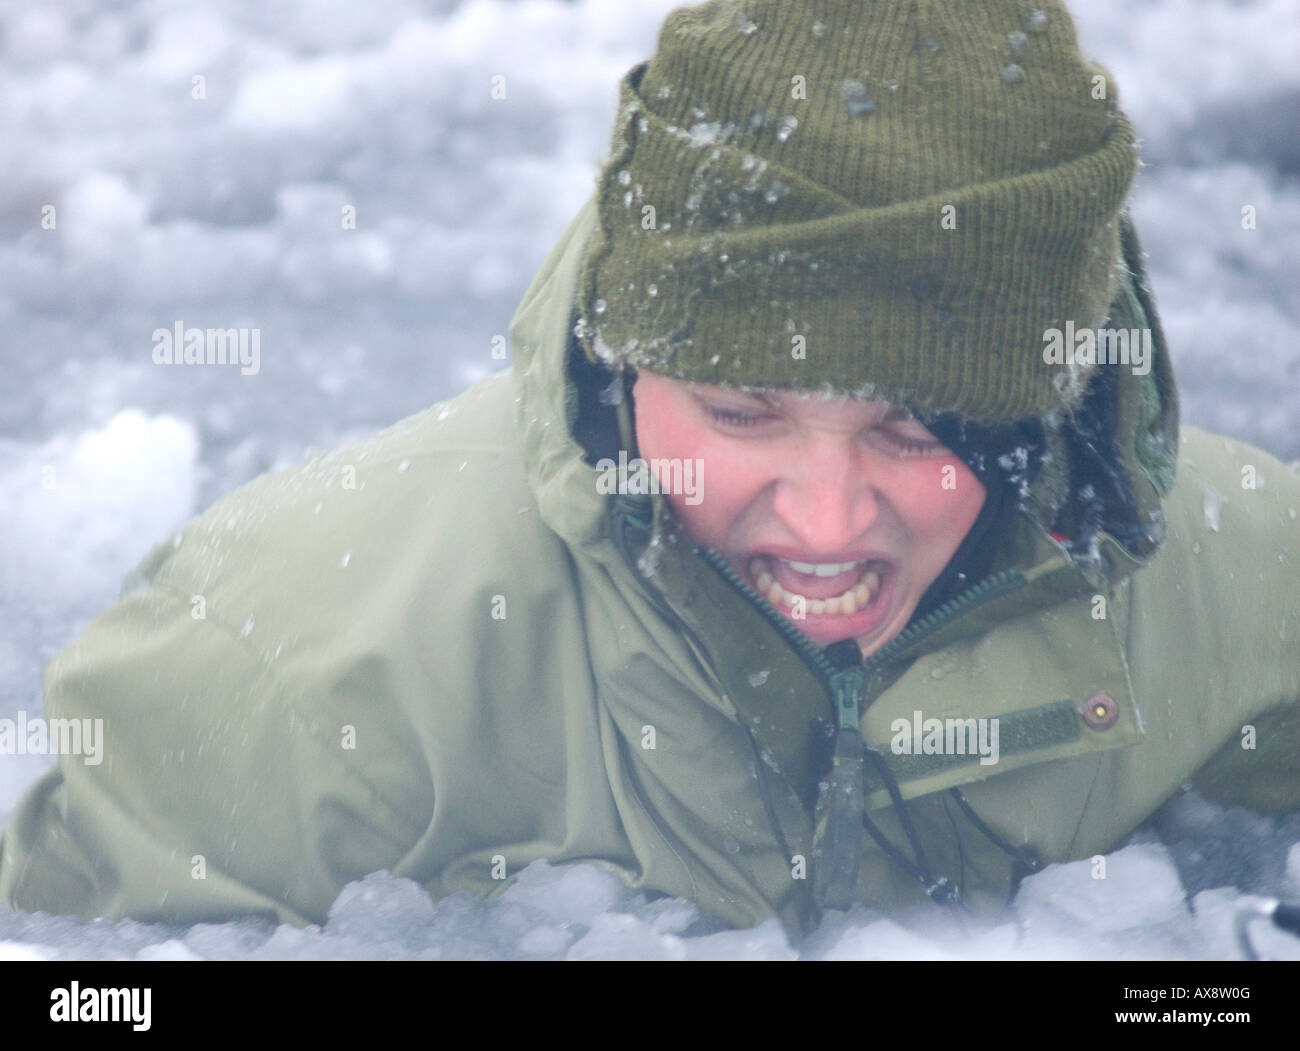 Frederick in the frozen fjord water at minus 2C learning what it feels like to go through the ice Chest deep in - Stock Image